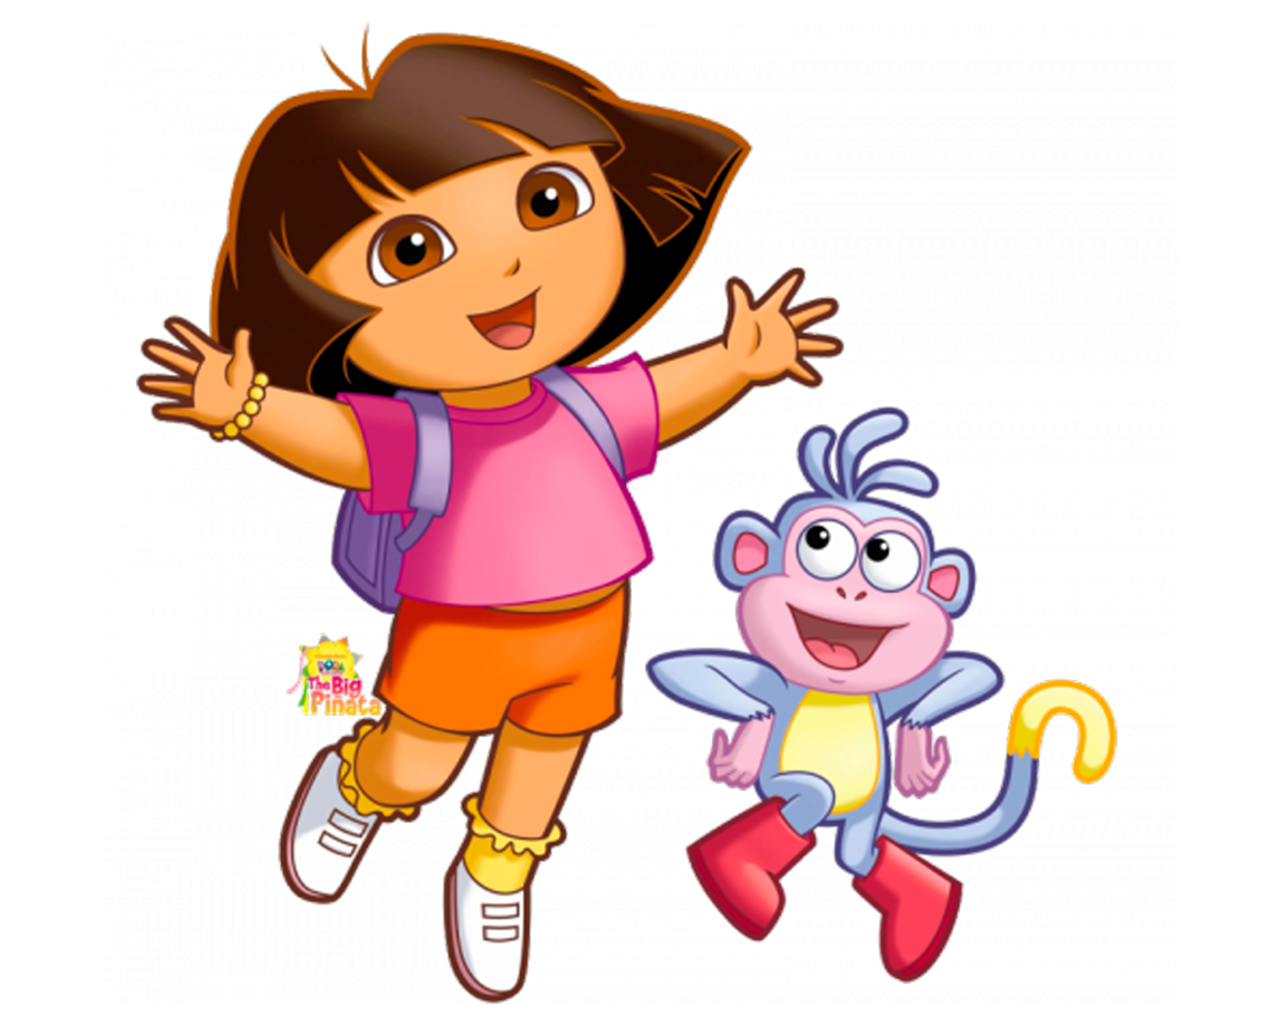 Cartoon characters png. Dora the explorer